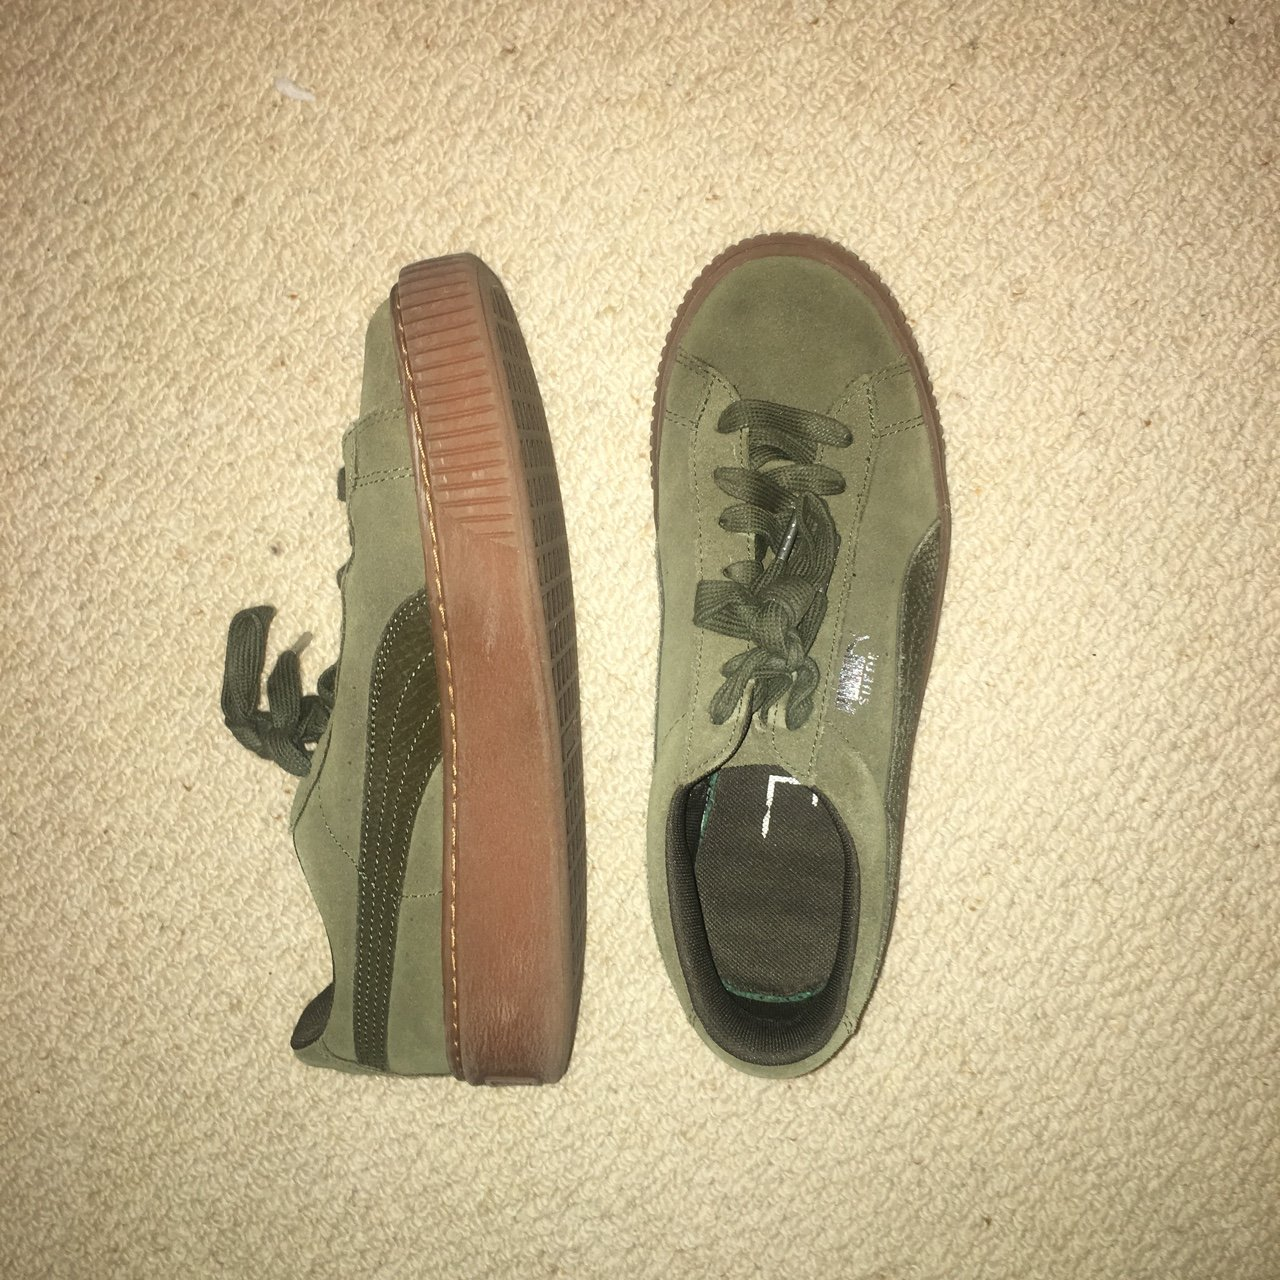 a45aaef4c8f Selling these beaut khaki suede pumas xx mint condition just - Depop